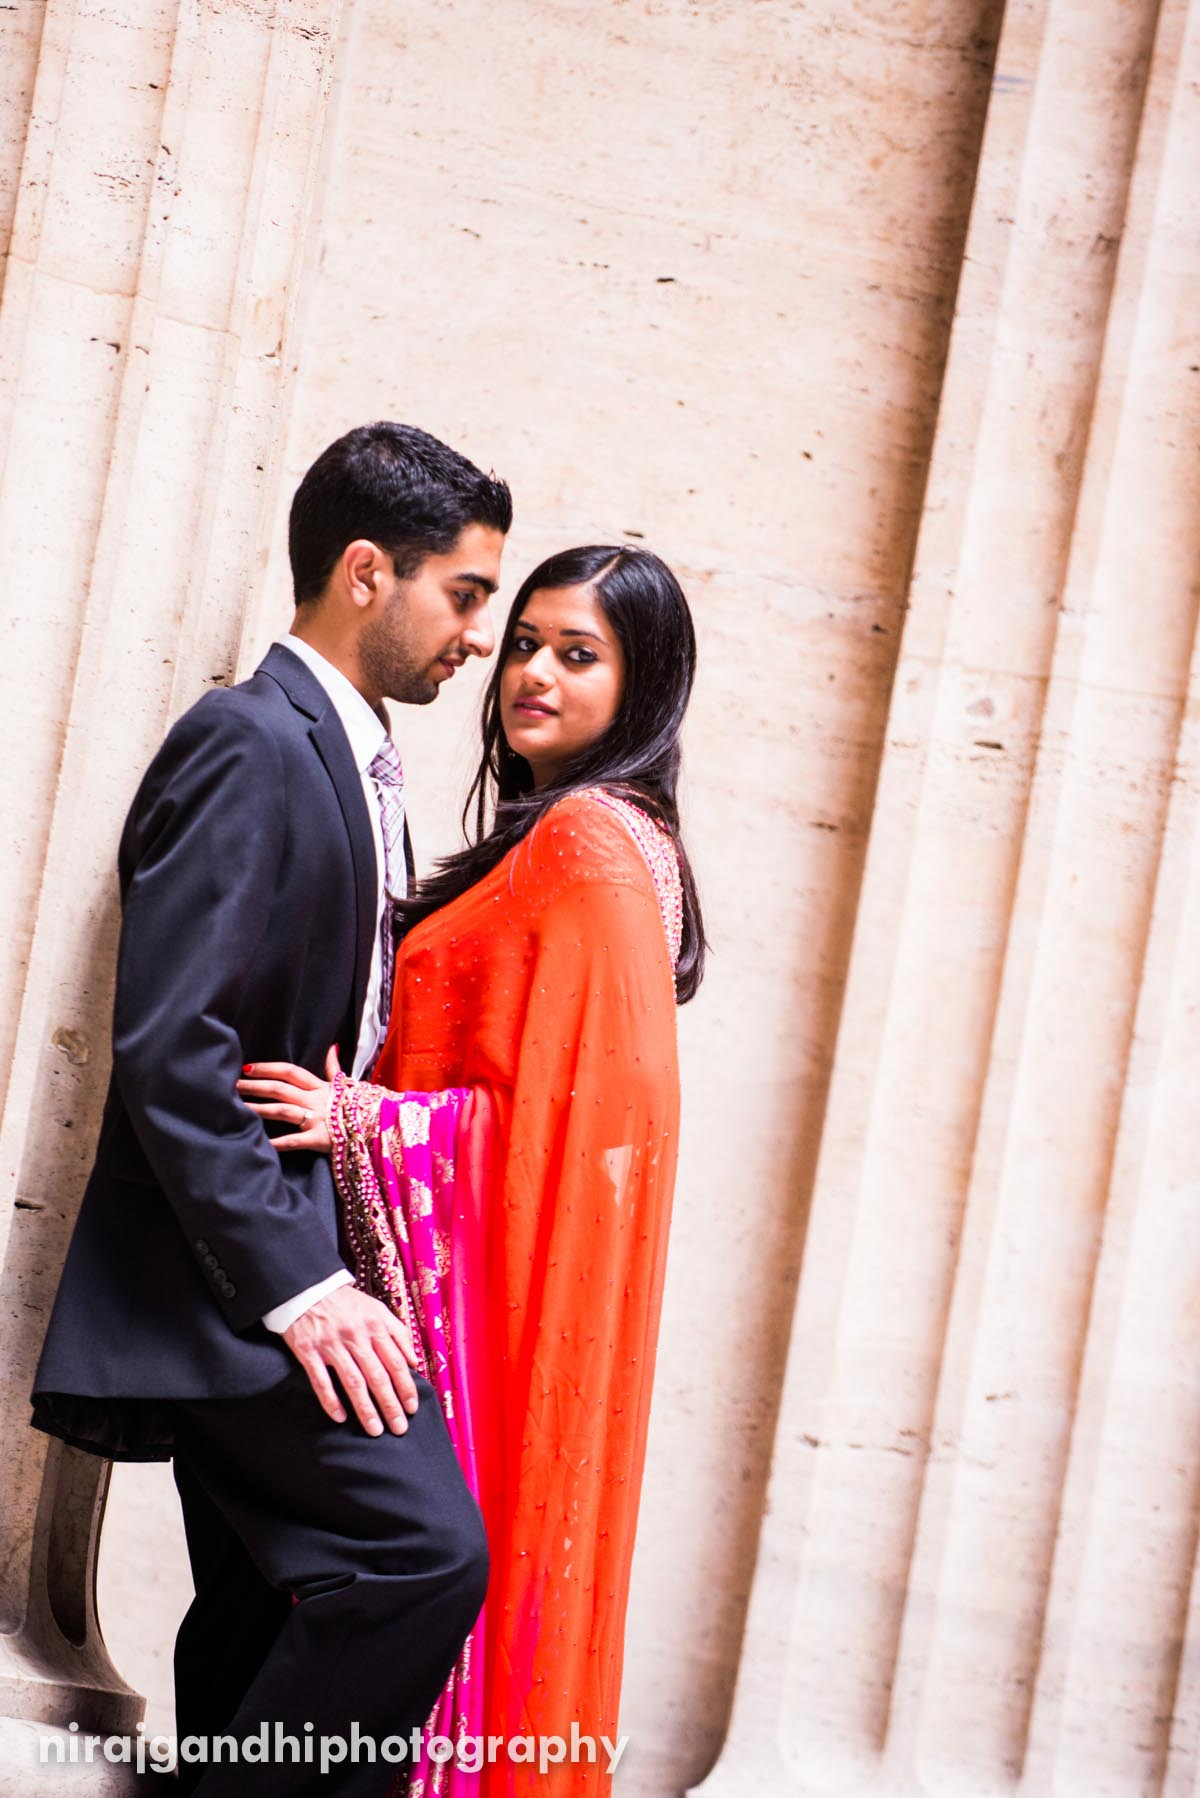 Uma + Chirag Engagement Session-1.jpg